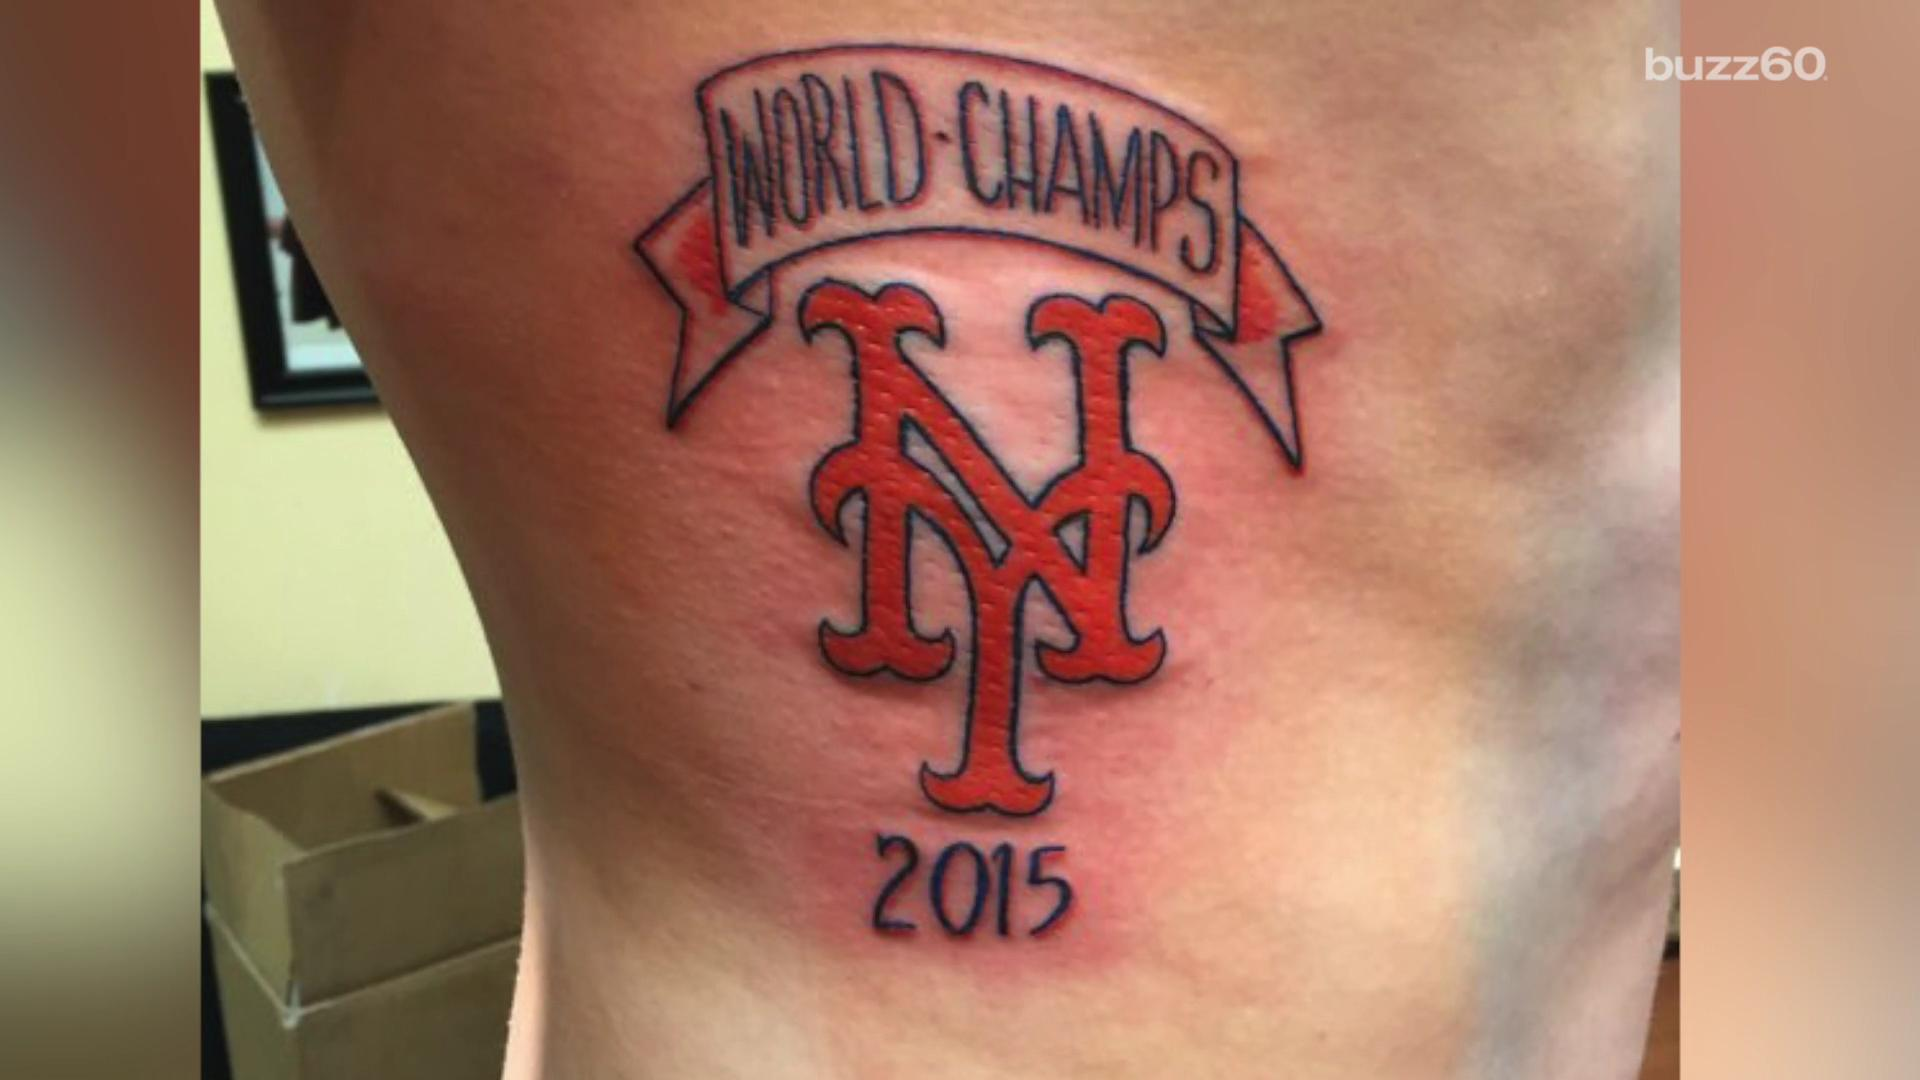 Mets fan jumped the gun with 'World Champs' tattoo